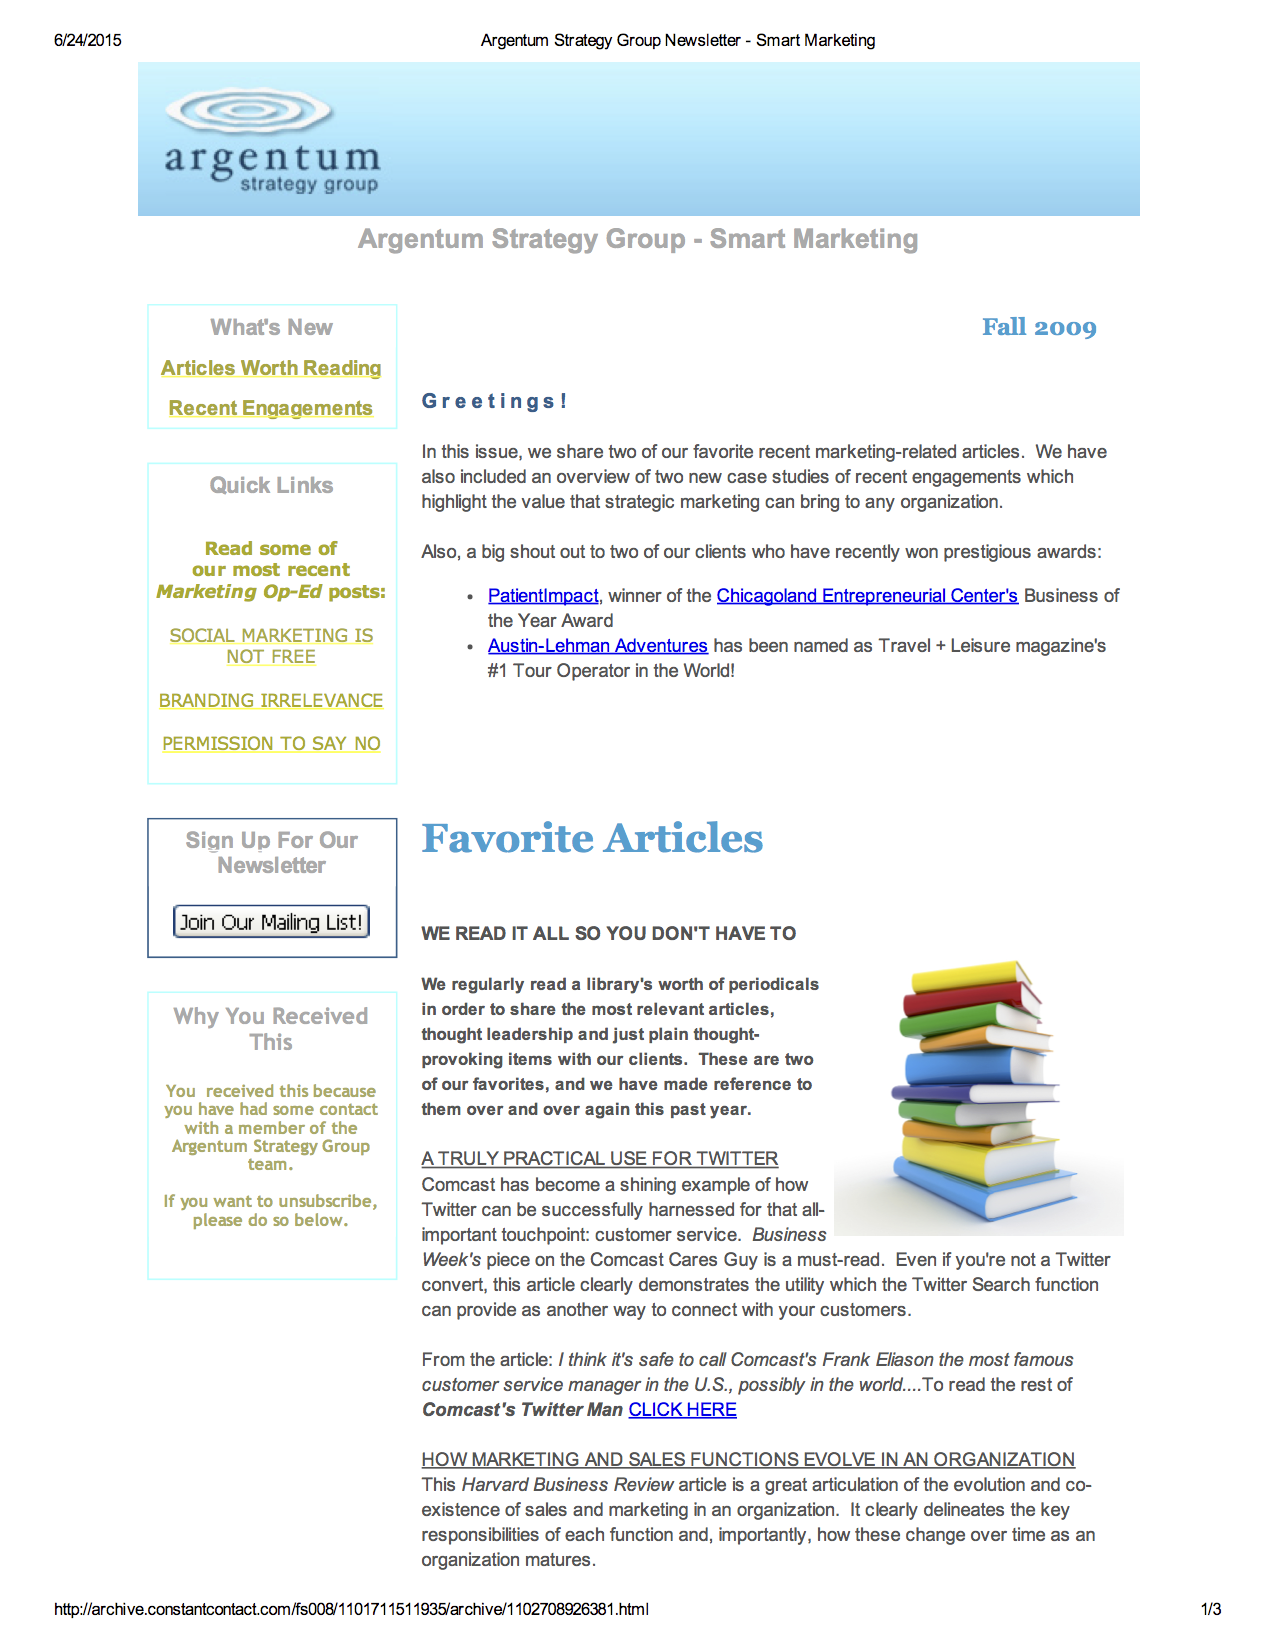 Marketing Newsletter  Marketing Tips  Argentum Strategy. Protein Domain Finder Tool 2008 Scion Tc Mpg. Human Factors Engineering Schools. Employee Engagement Assessment. Online Pmp Training Free Rosetta Stone Daemon. Best Immigration Lawyer In San Francisco. Sports Psychology Online Degree. Organic Chemistry Textbook Pdf. Take Over Home Loan Payments Local Car Ads